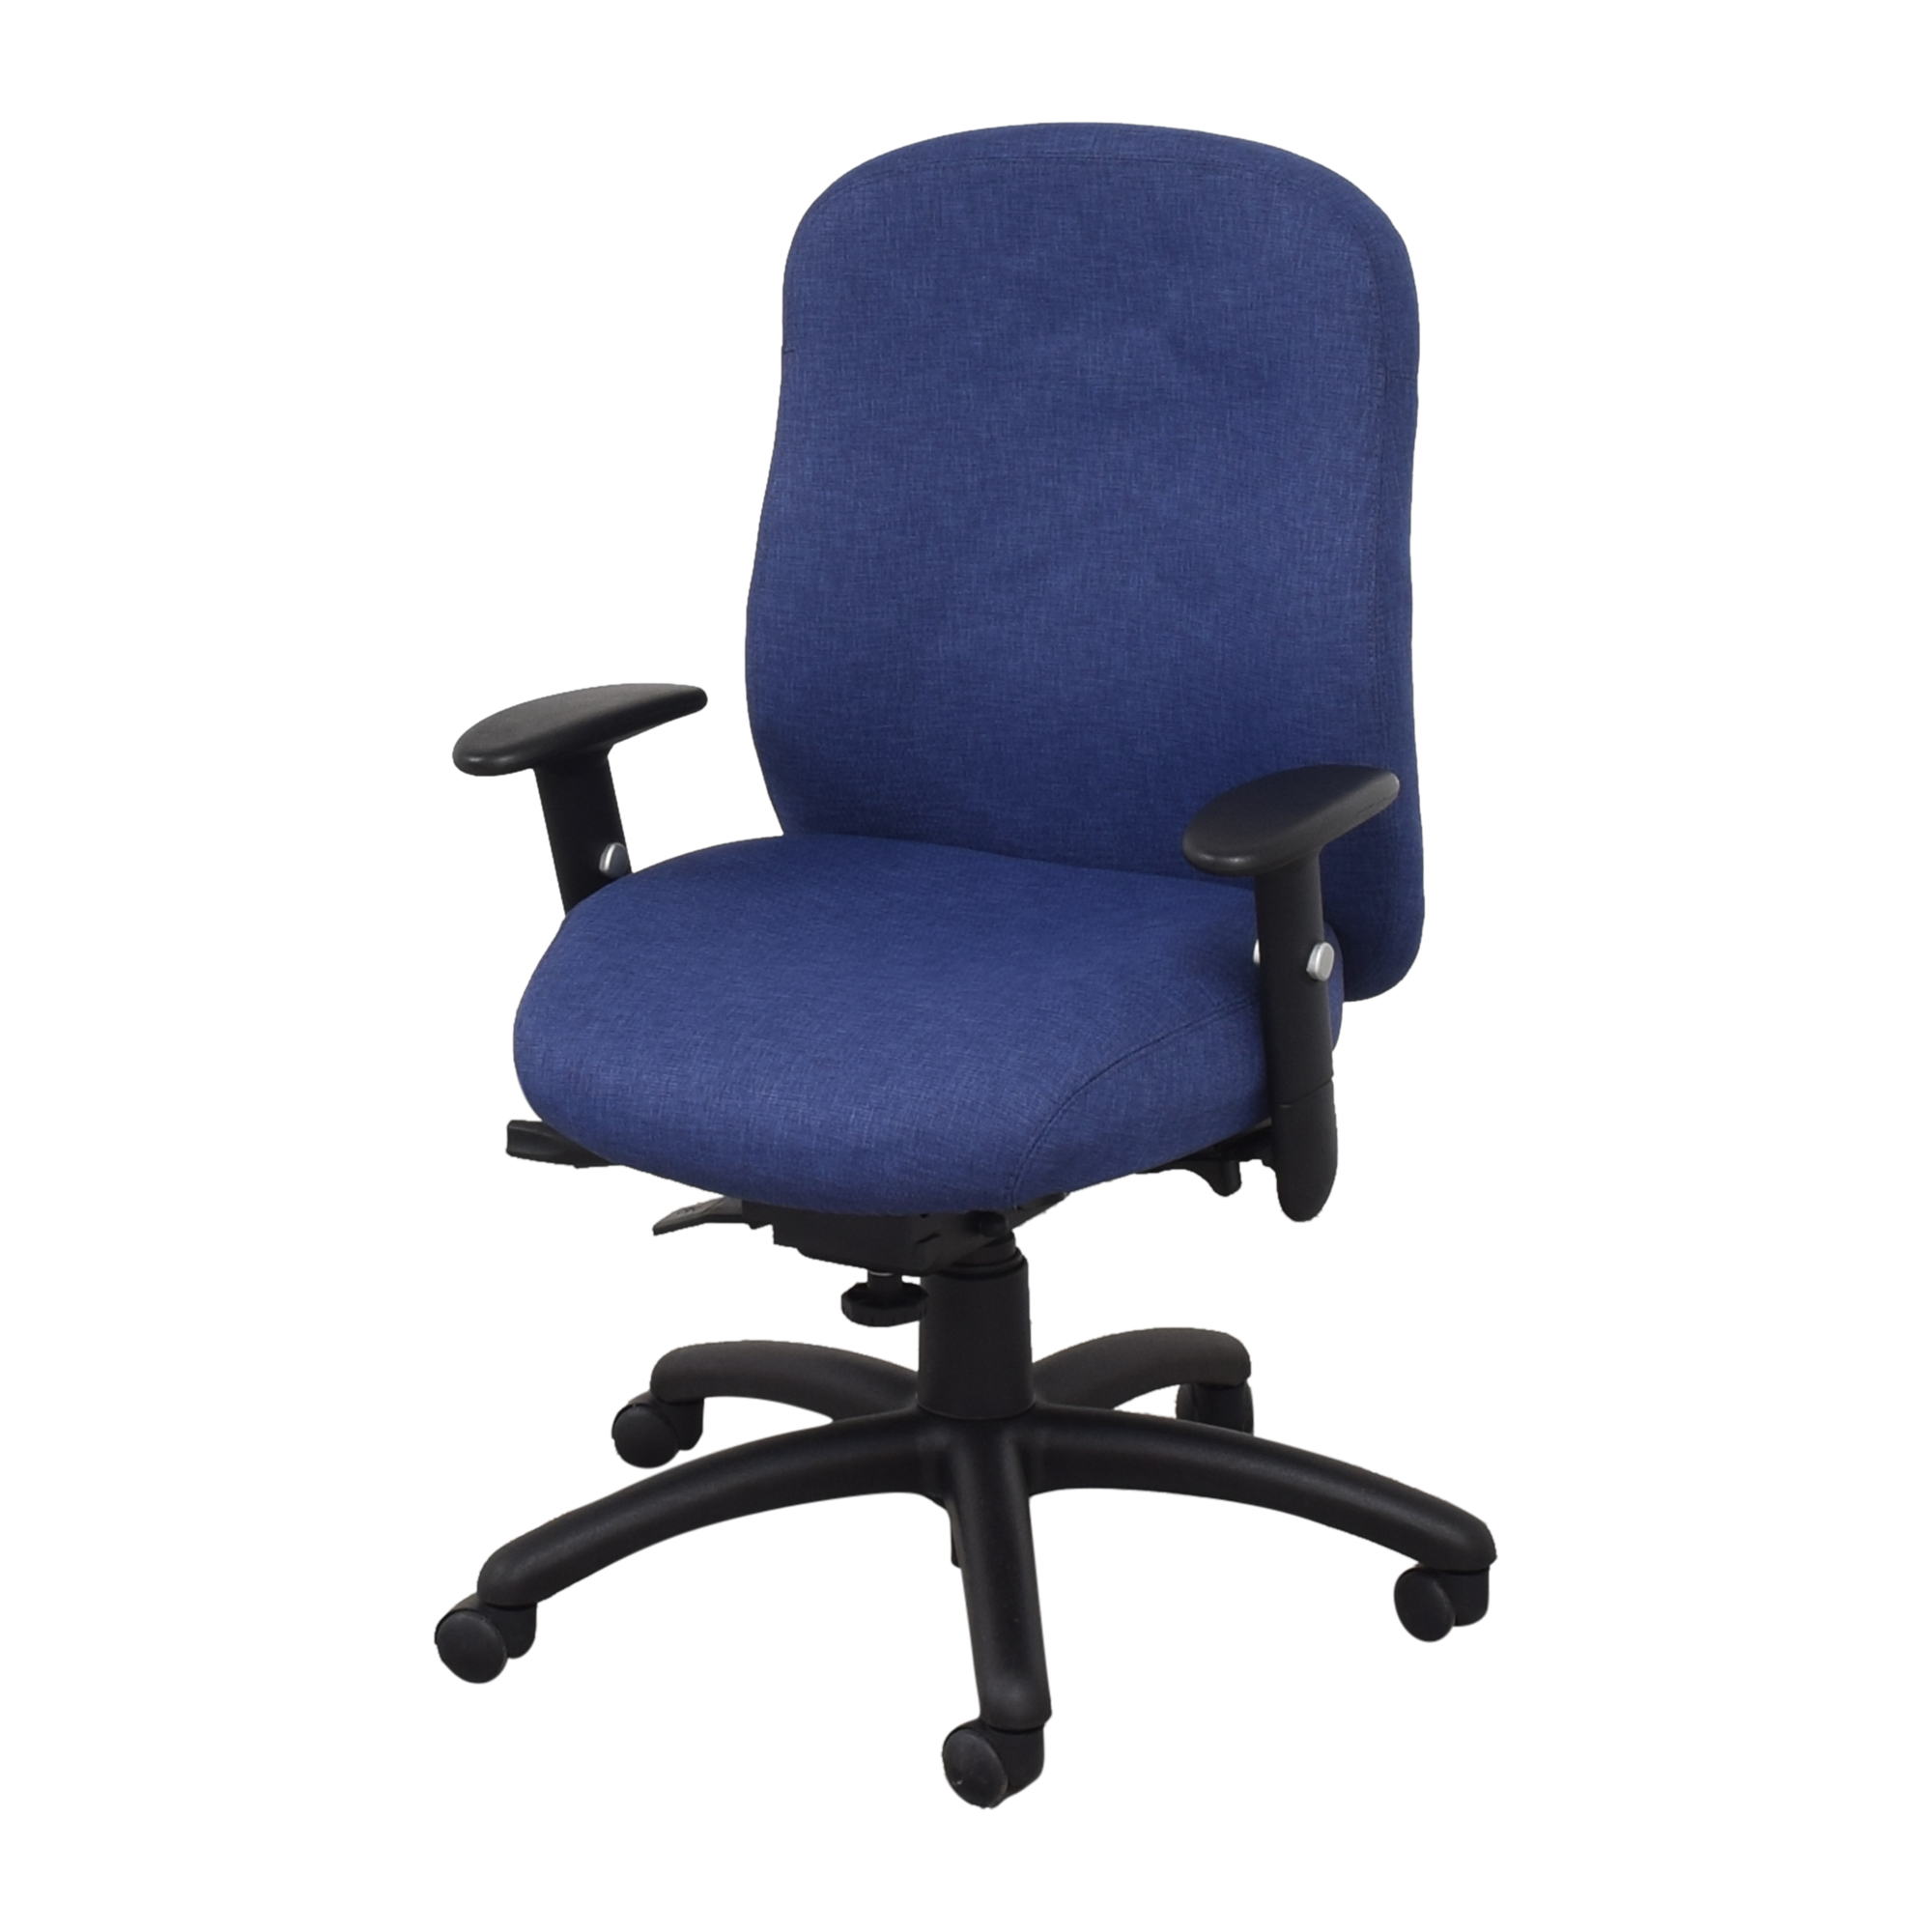 shop Offices to Go Multi-Function Desk Chair Offices to Go Chairs